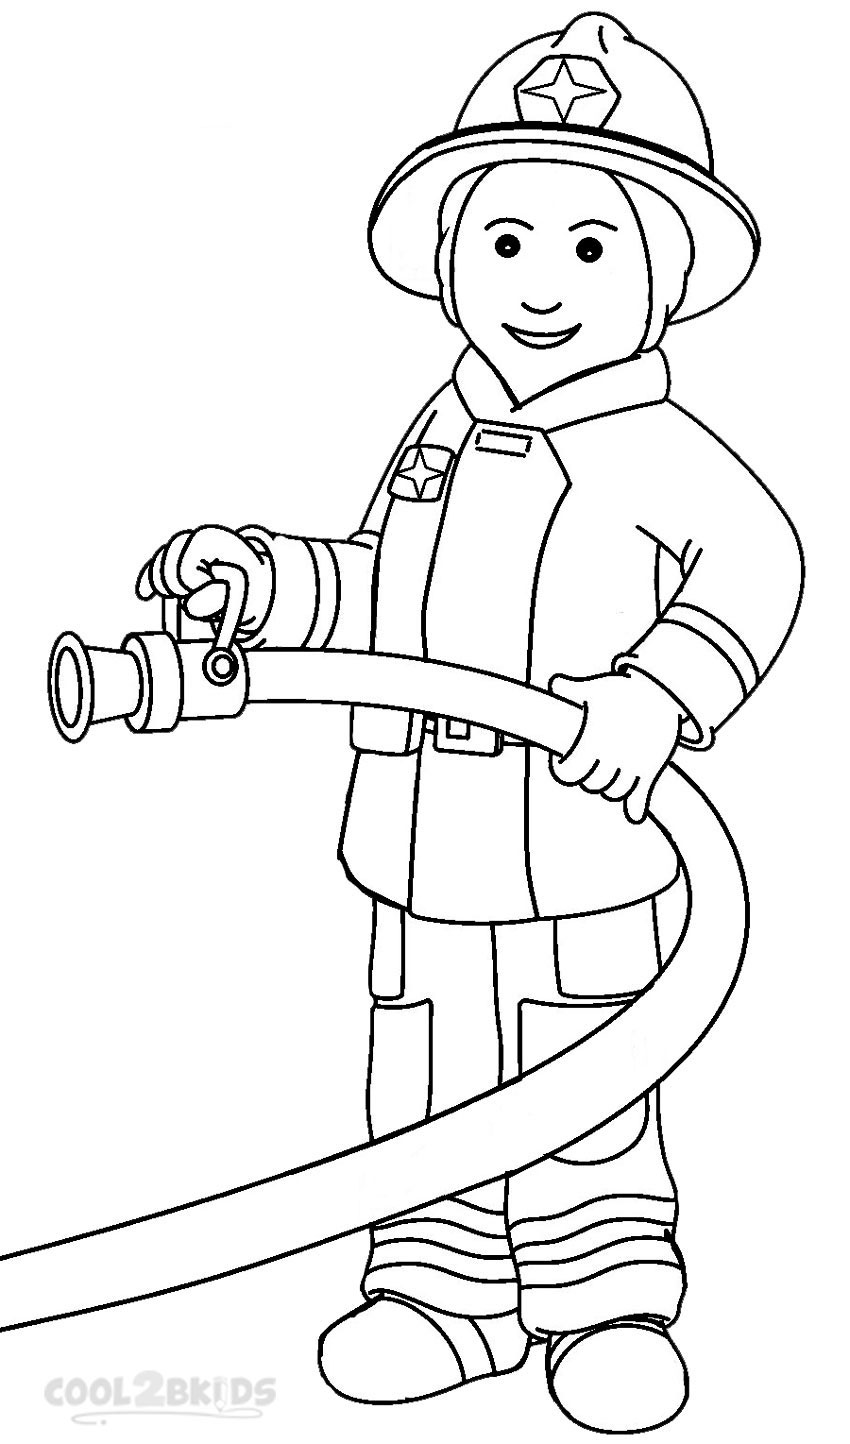 free coloring pages of firemen - photo#3